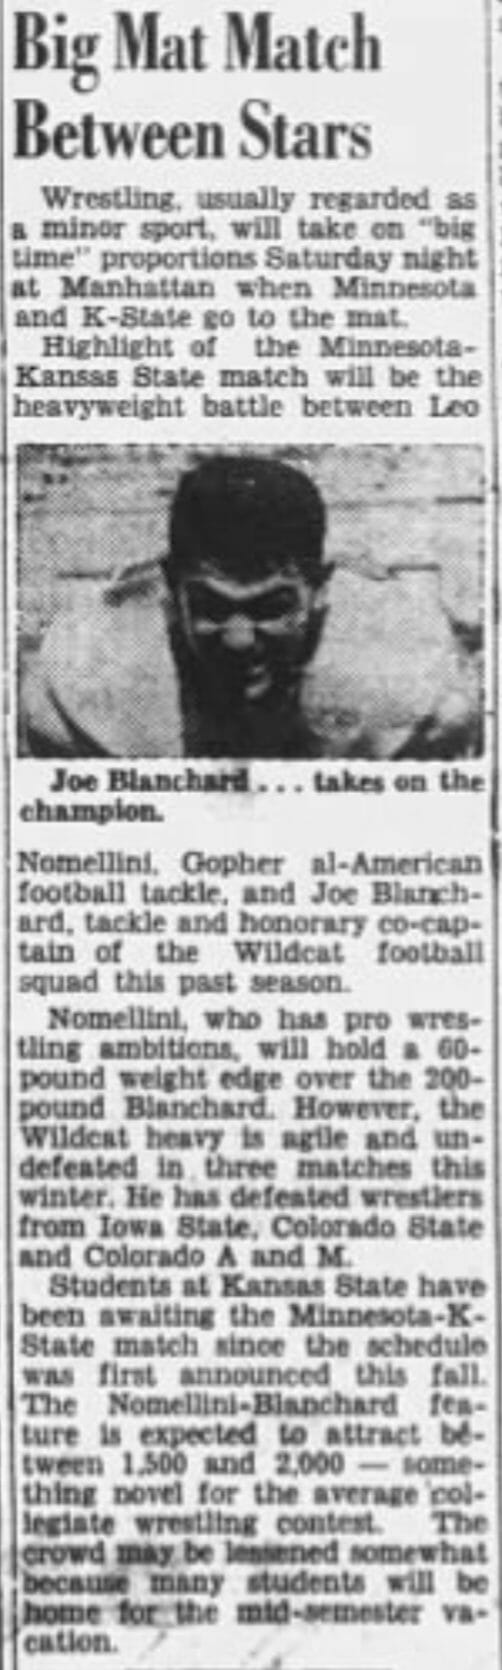 Newspaper article promoting a college wrestling match between Joe Blanchard and All-American football player Leo Nomellini. (The Manhattan Mercury, Thursday, January 26, 1950 edition)